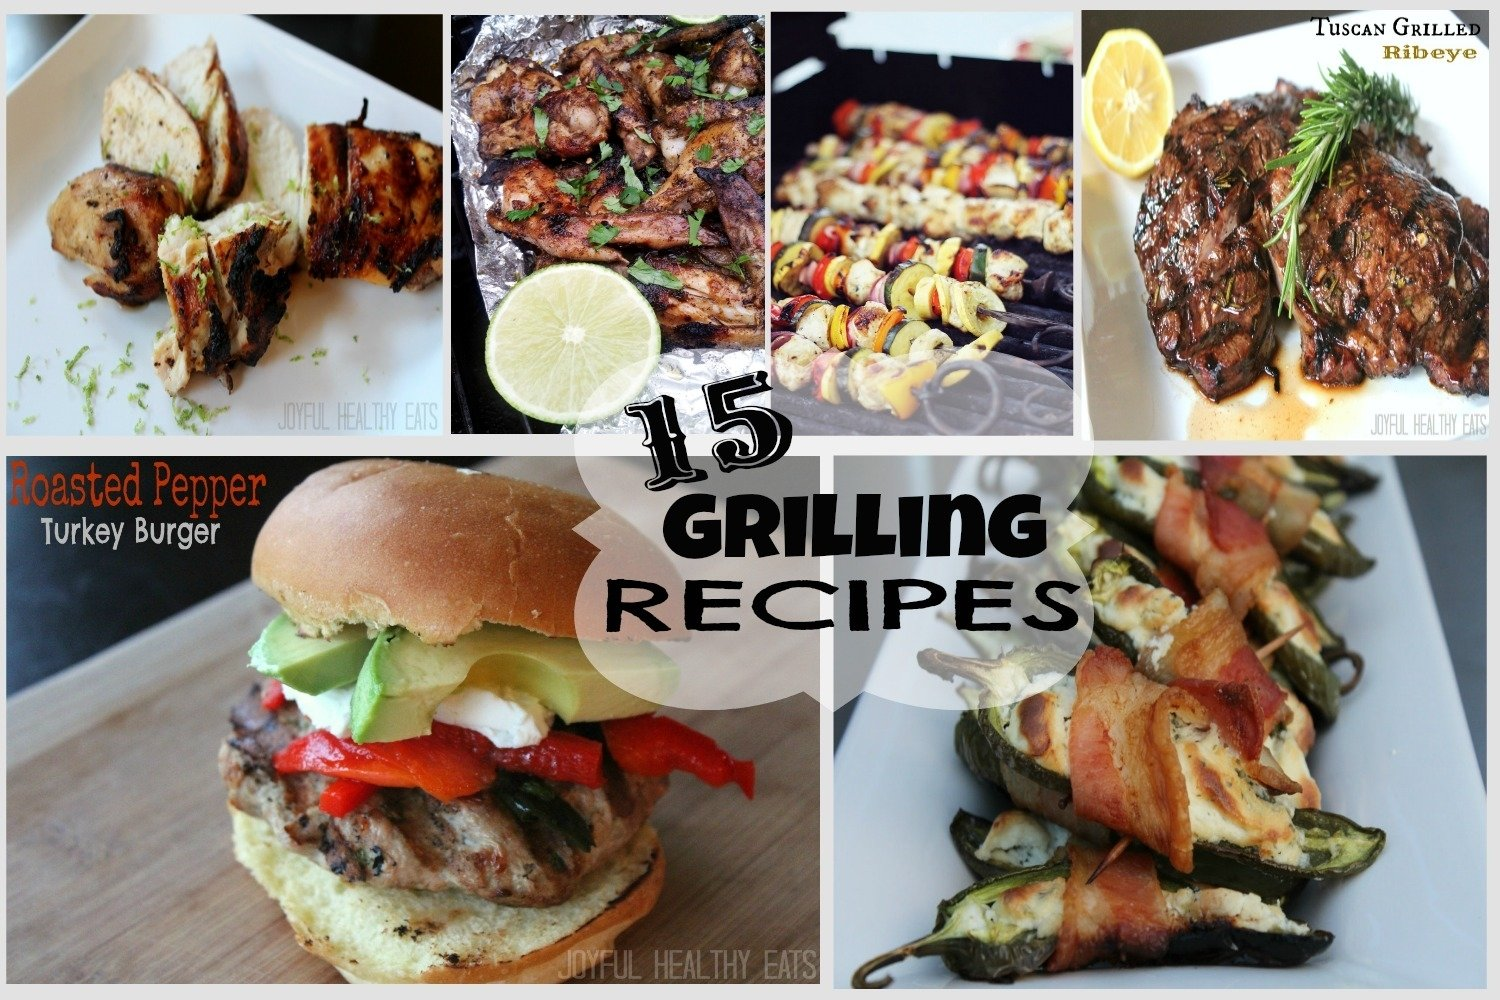 10 Beautiful Fourth Of July Menu Ideas burger recipes archives easy healthy recipes using real ingredients 2021